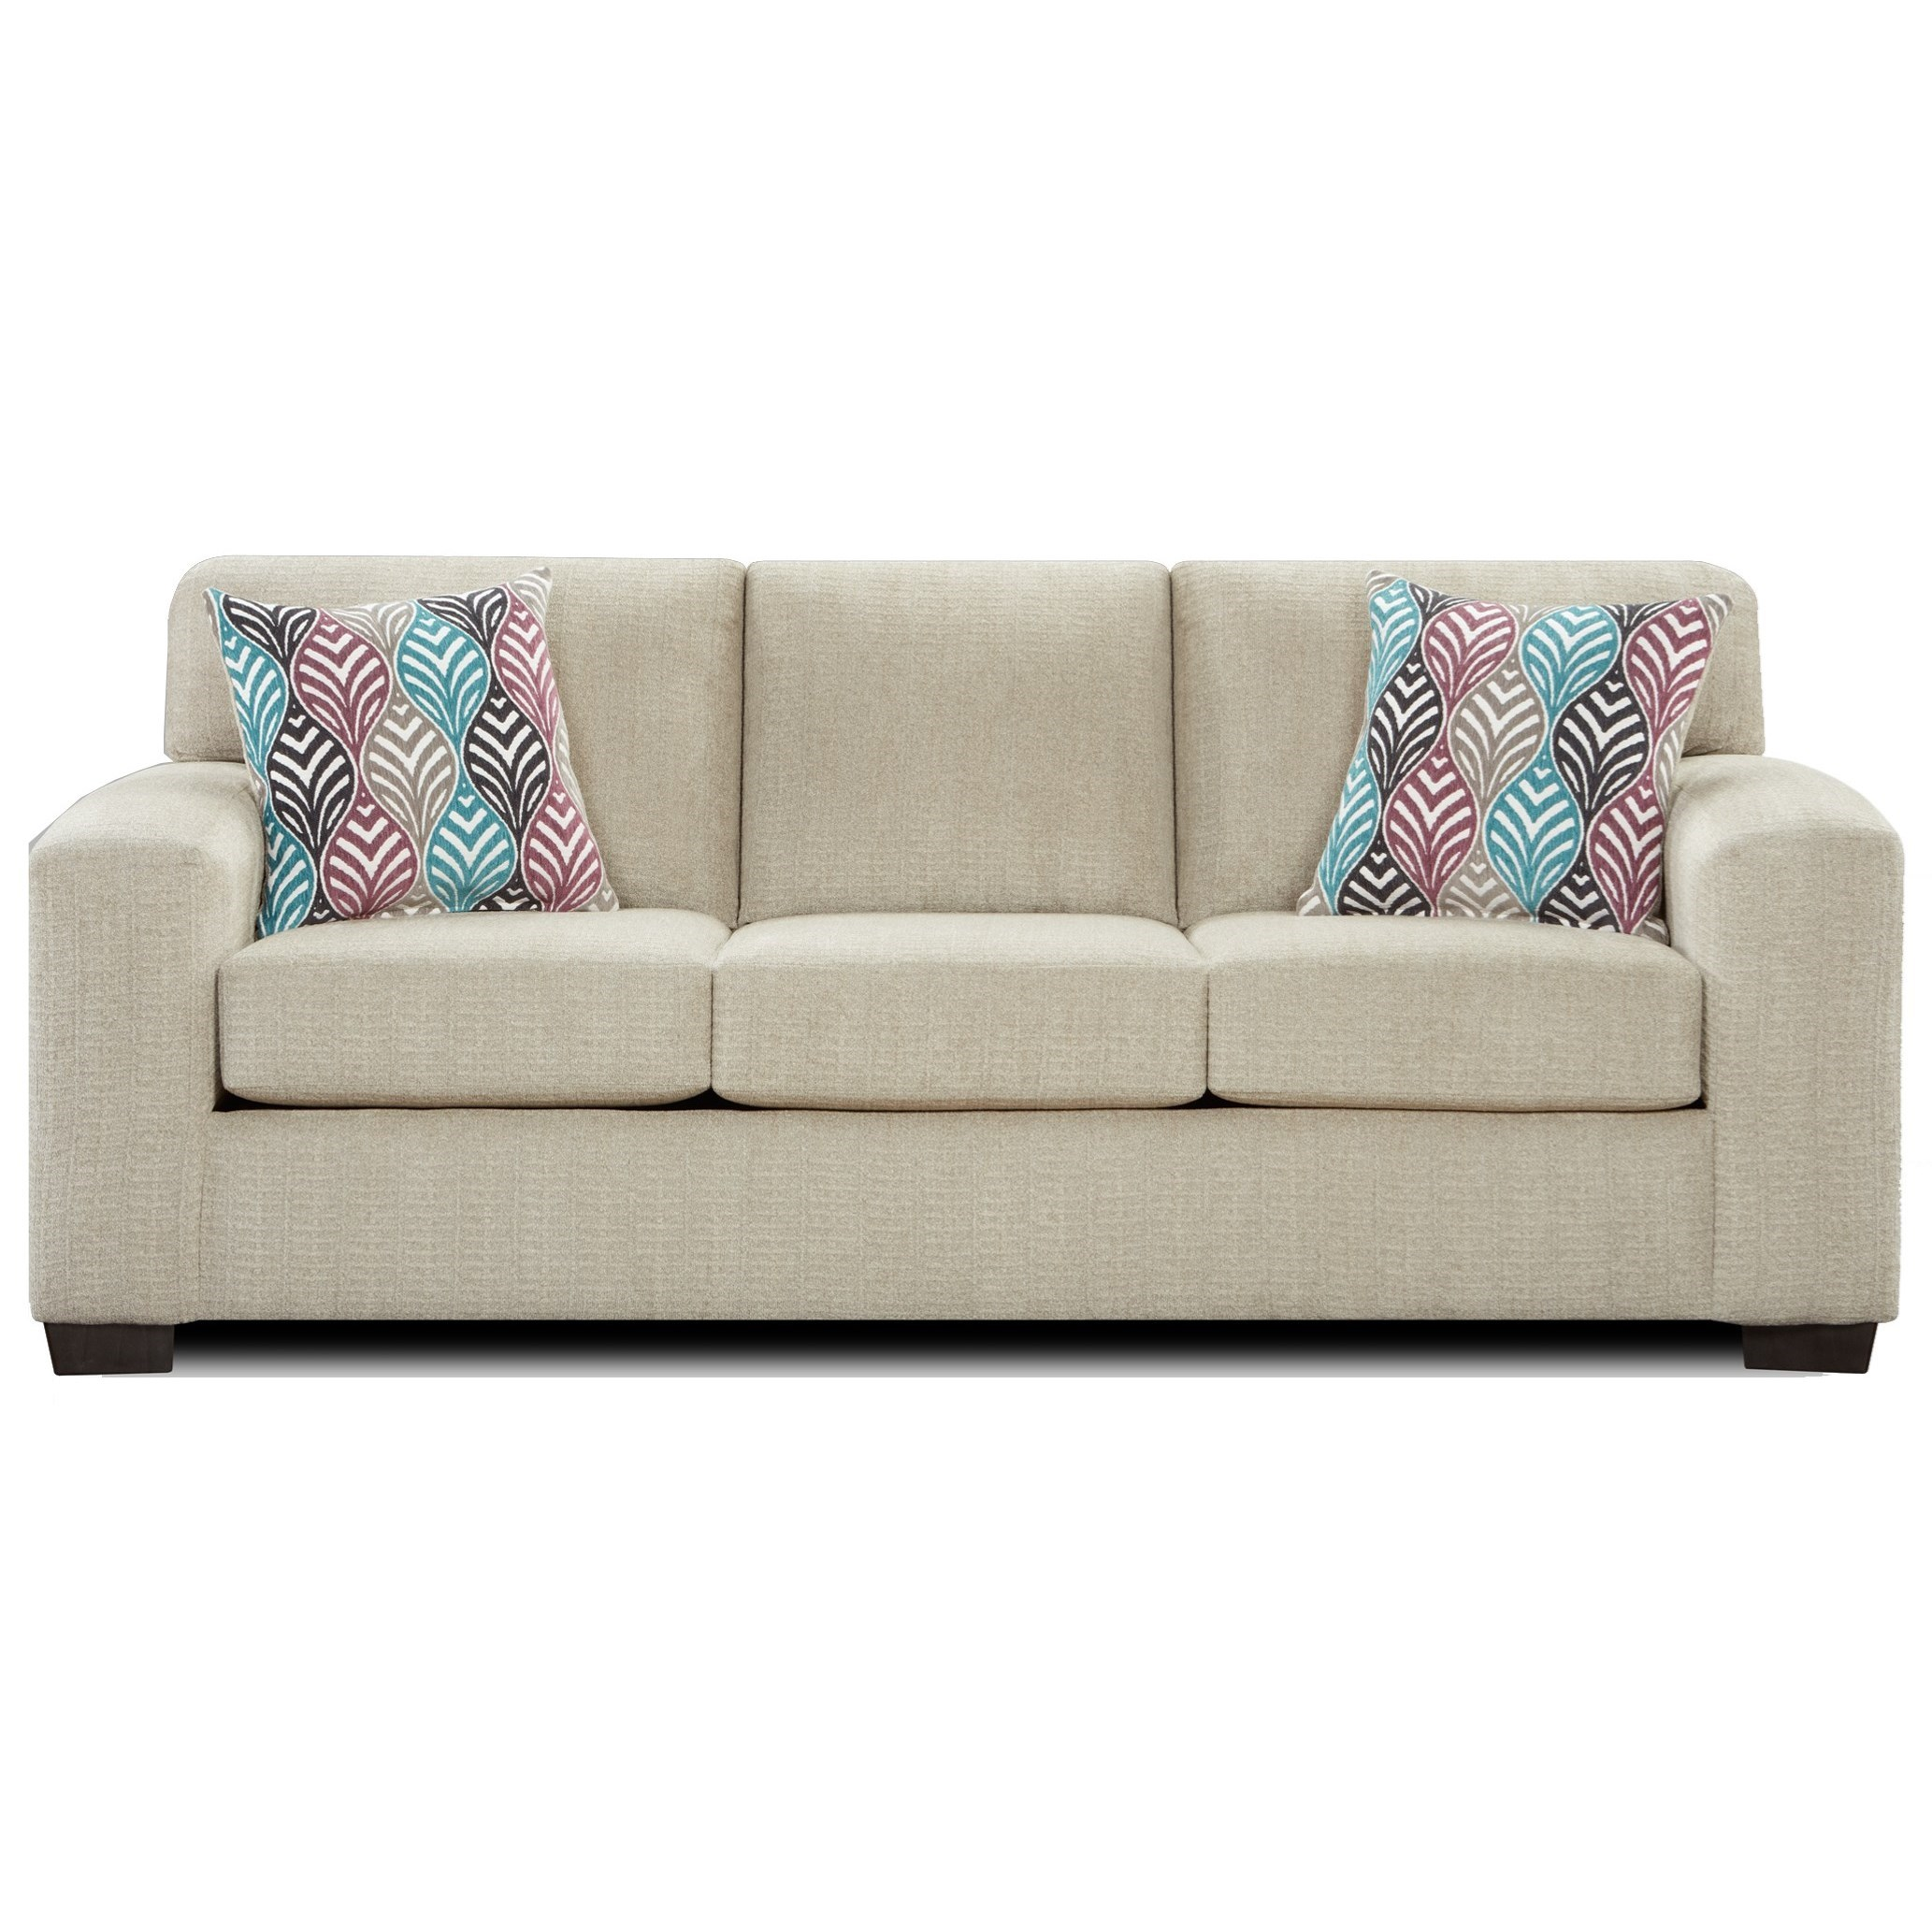 Affordable Furniture 5900 Contemporary Queen Sleeper Sofa